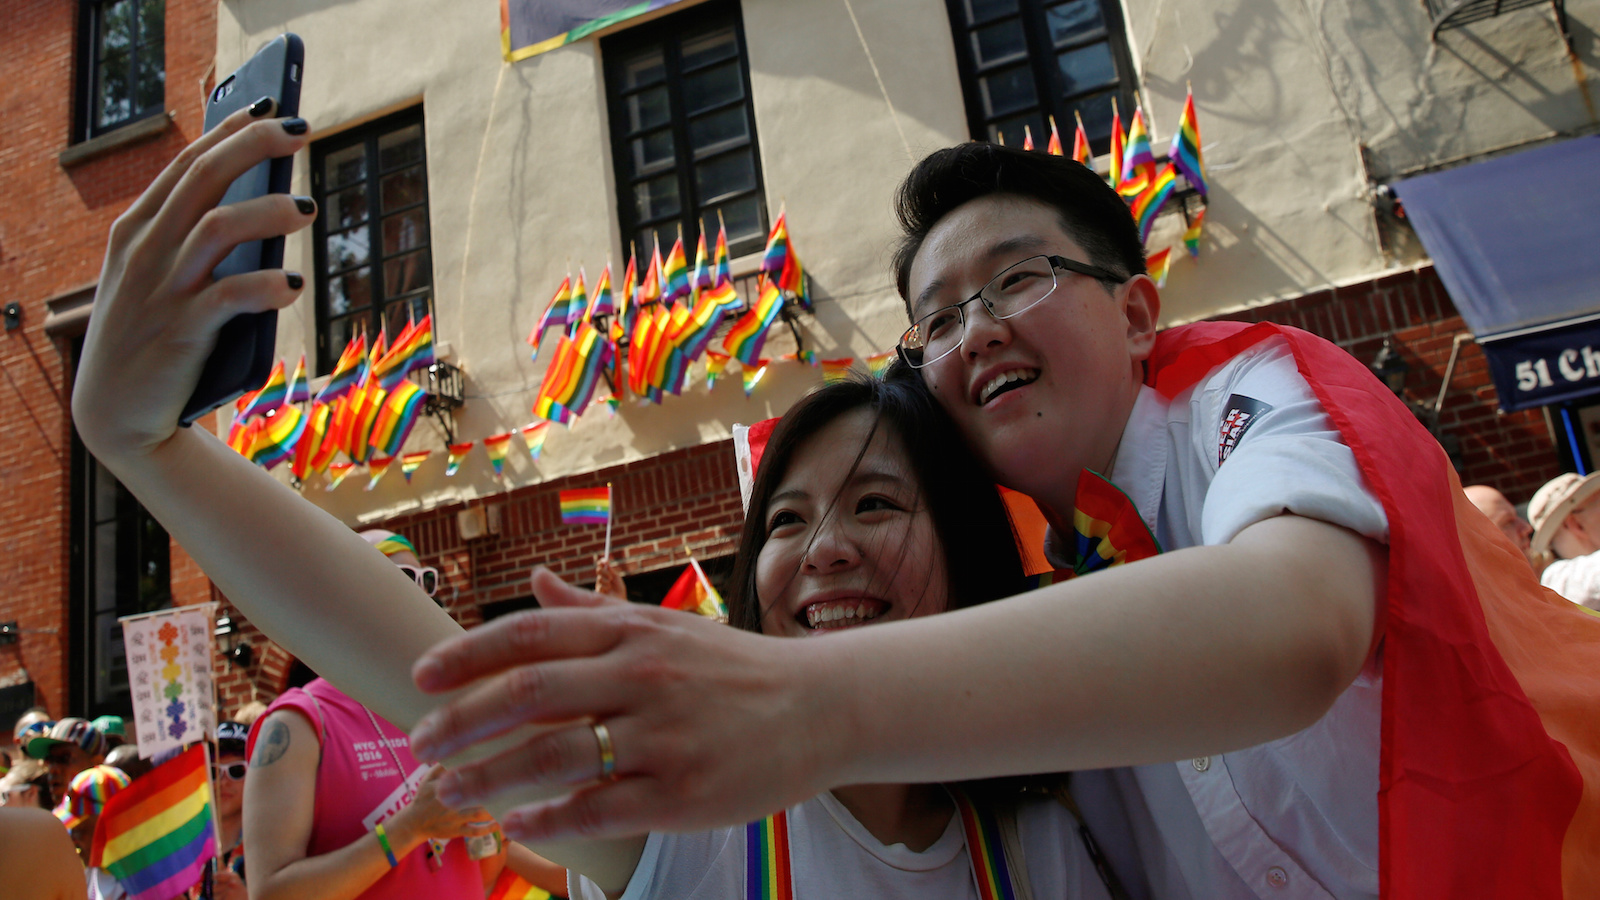 Participants pose for a selfie in front of the Stonewall Inn during the annual NYC Pride parade in New York City, New York, U.S., June 26, 2016.